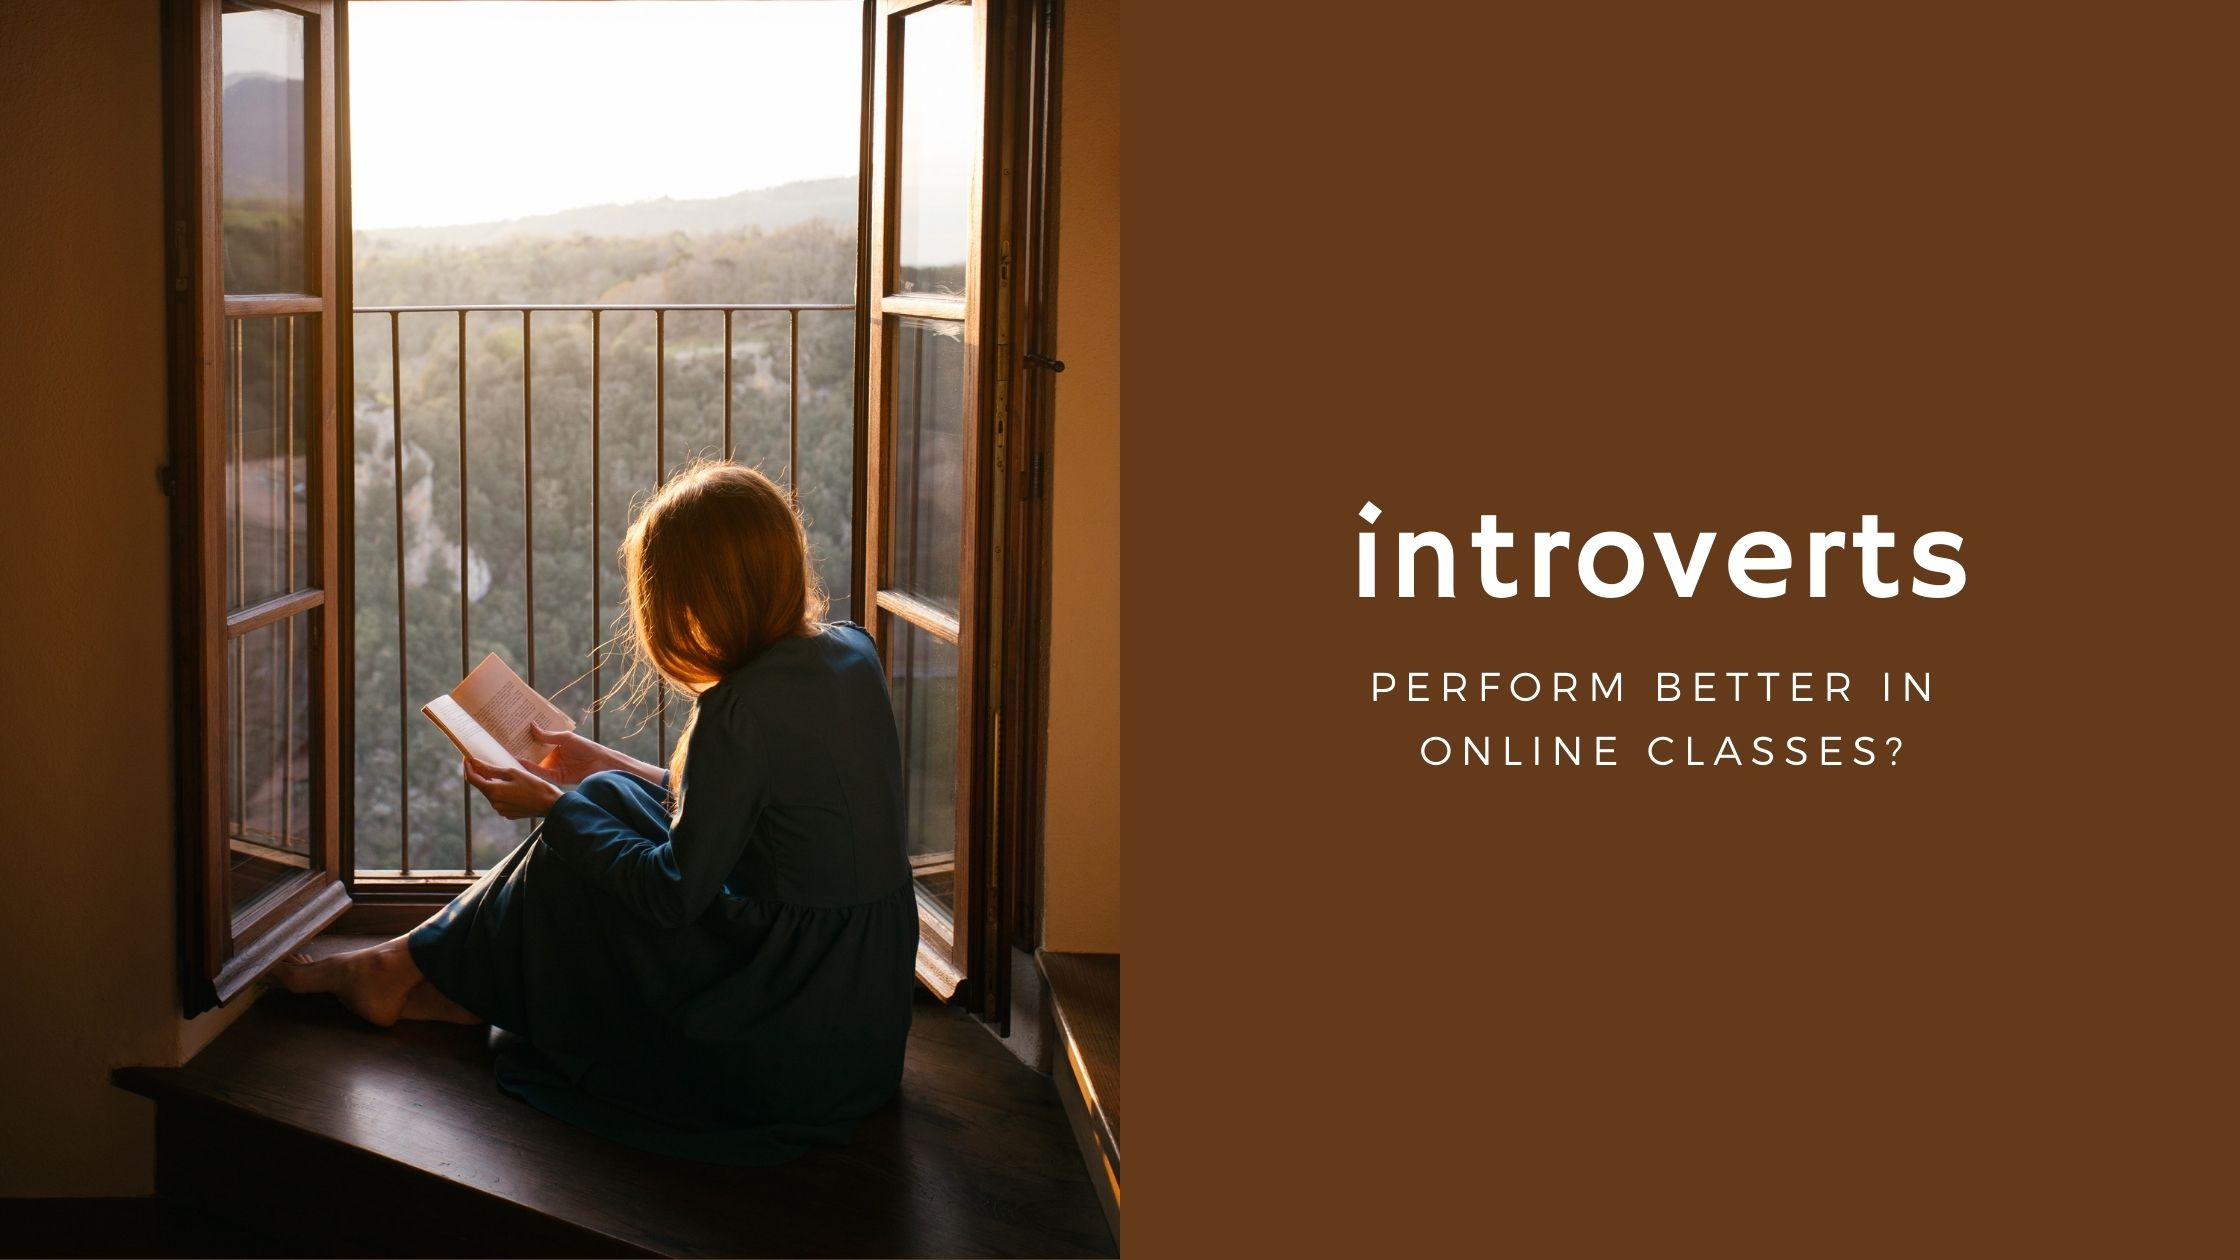 Introverts Fare Better in Online Classes